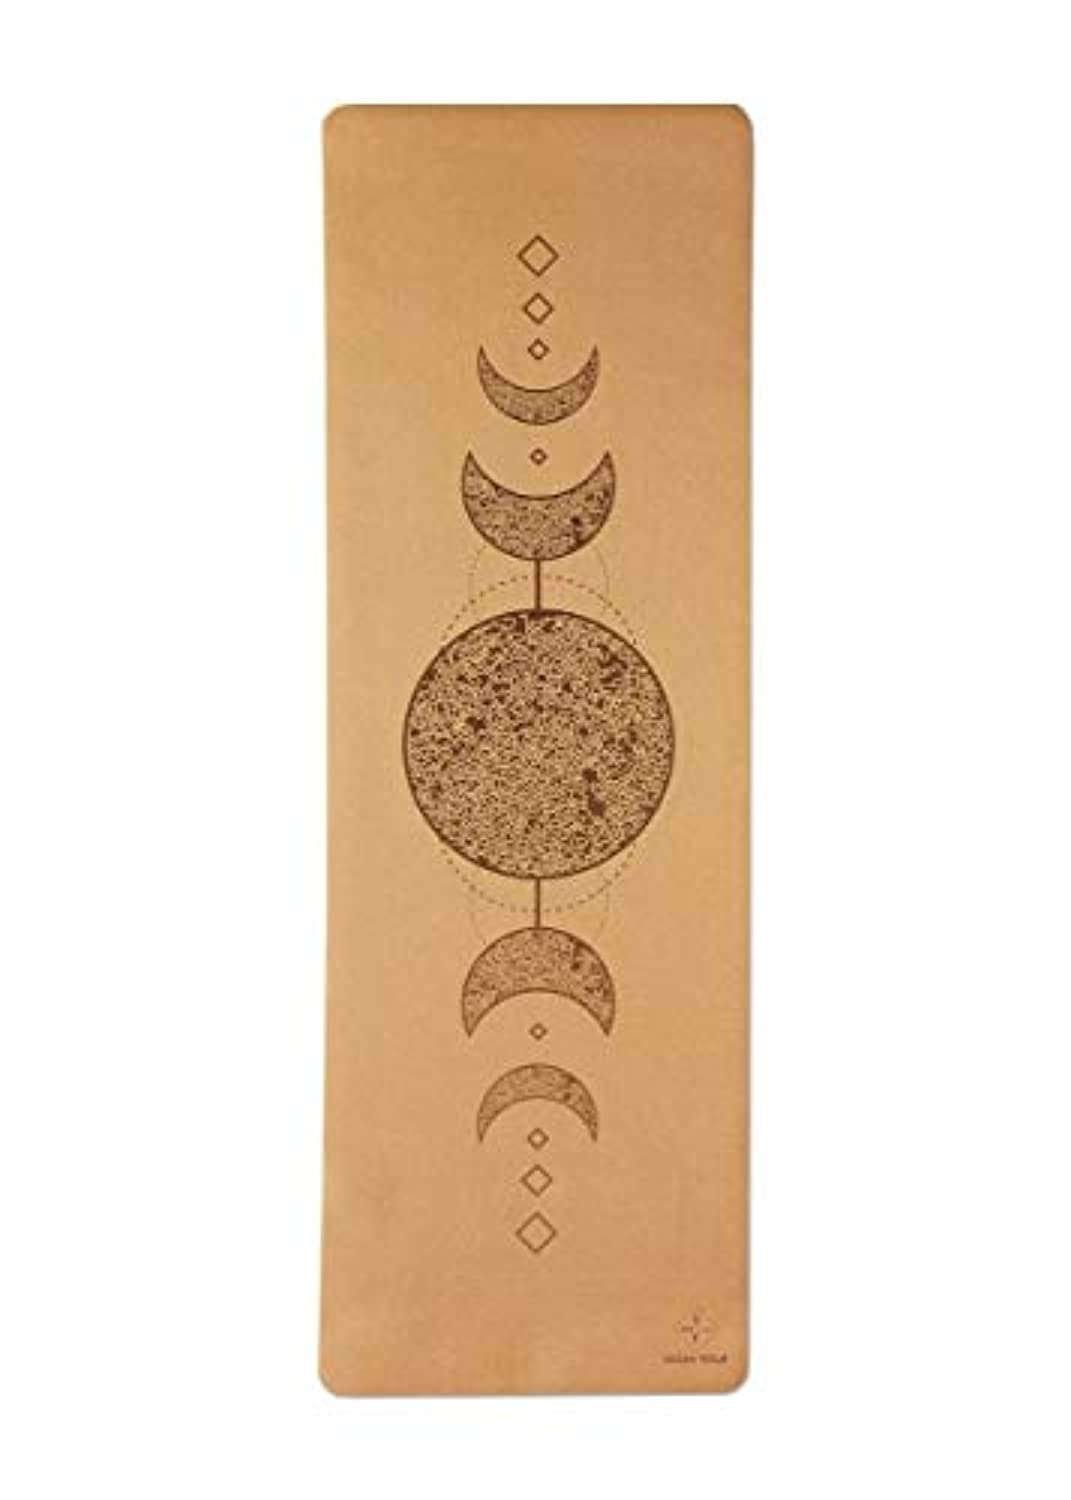 Cork Yoga Mat - Natural Rubber Bottom.